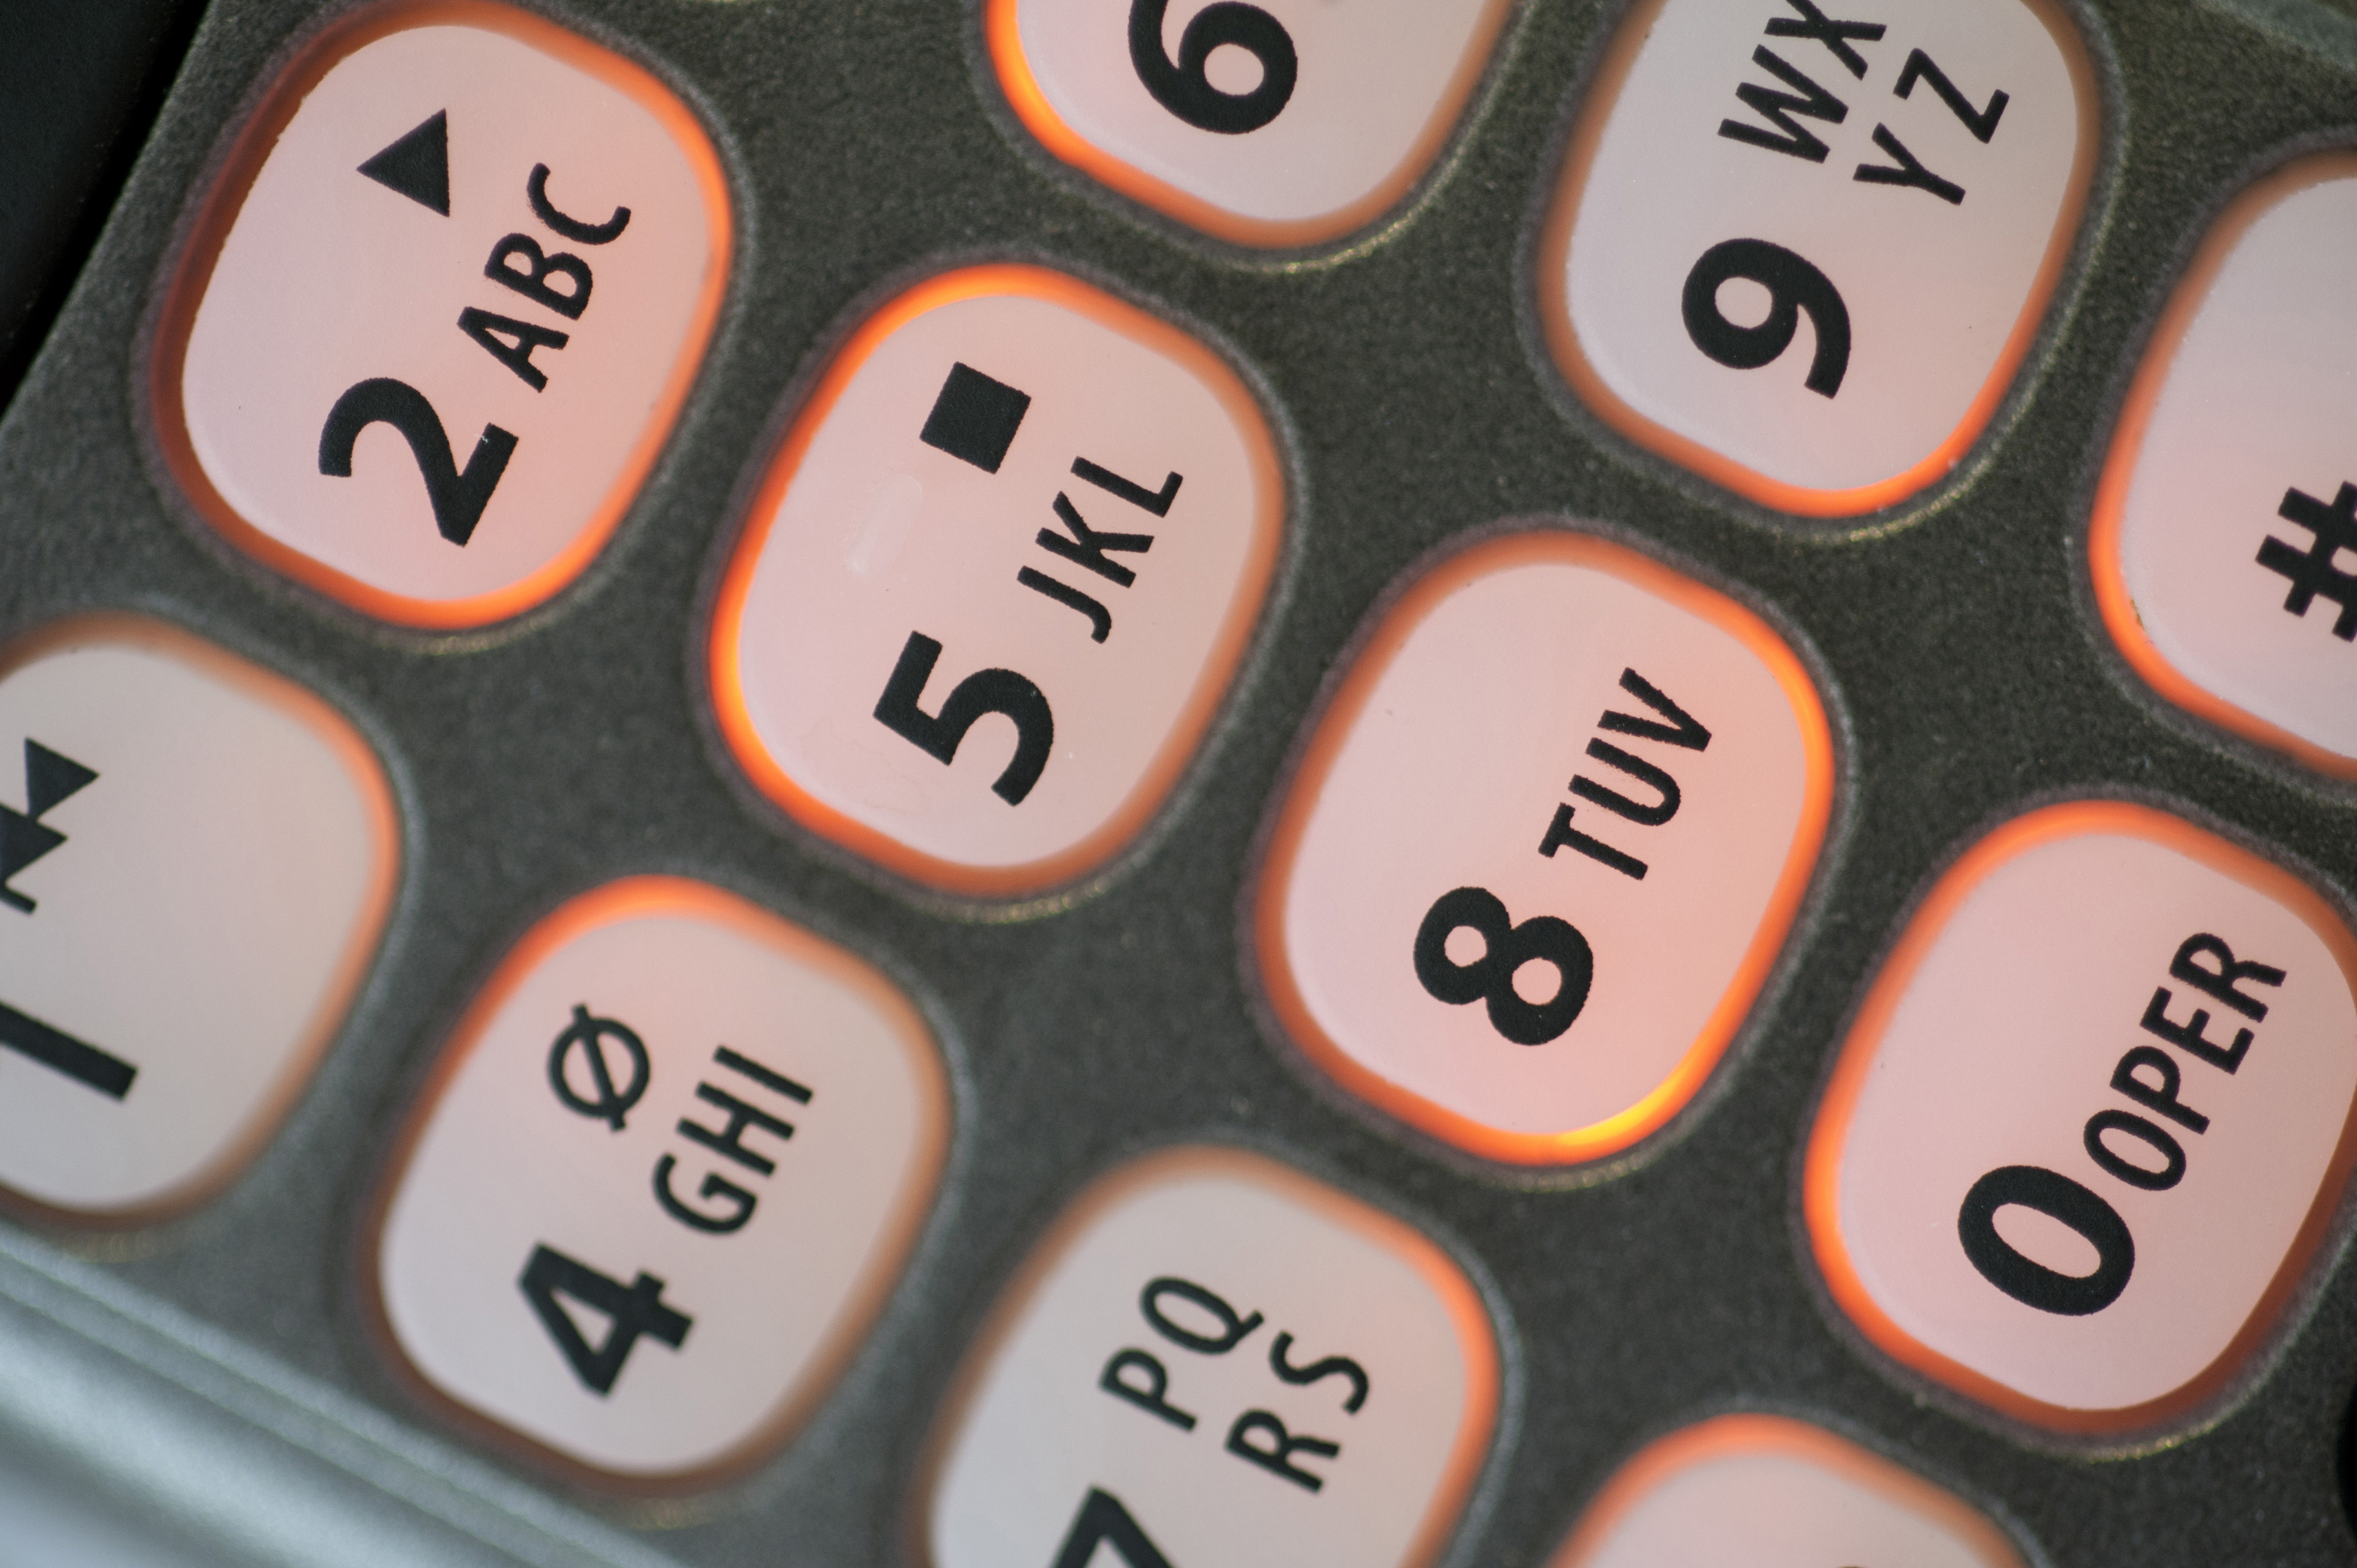 Keys and keypad on a telephone handset with numbers and alphabet letters in a communications concept, close up view